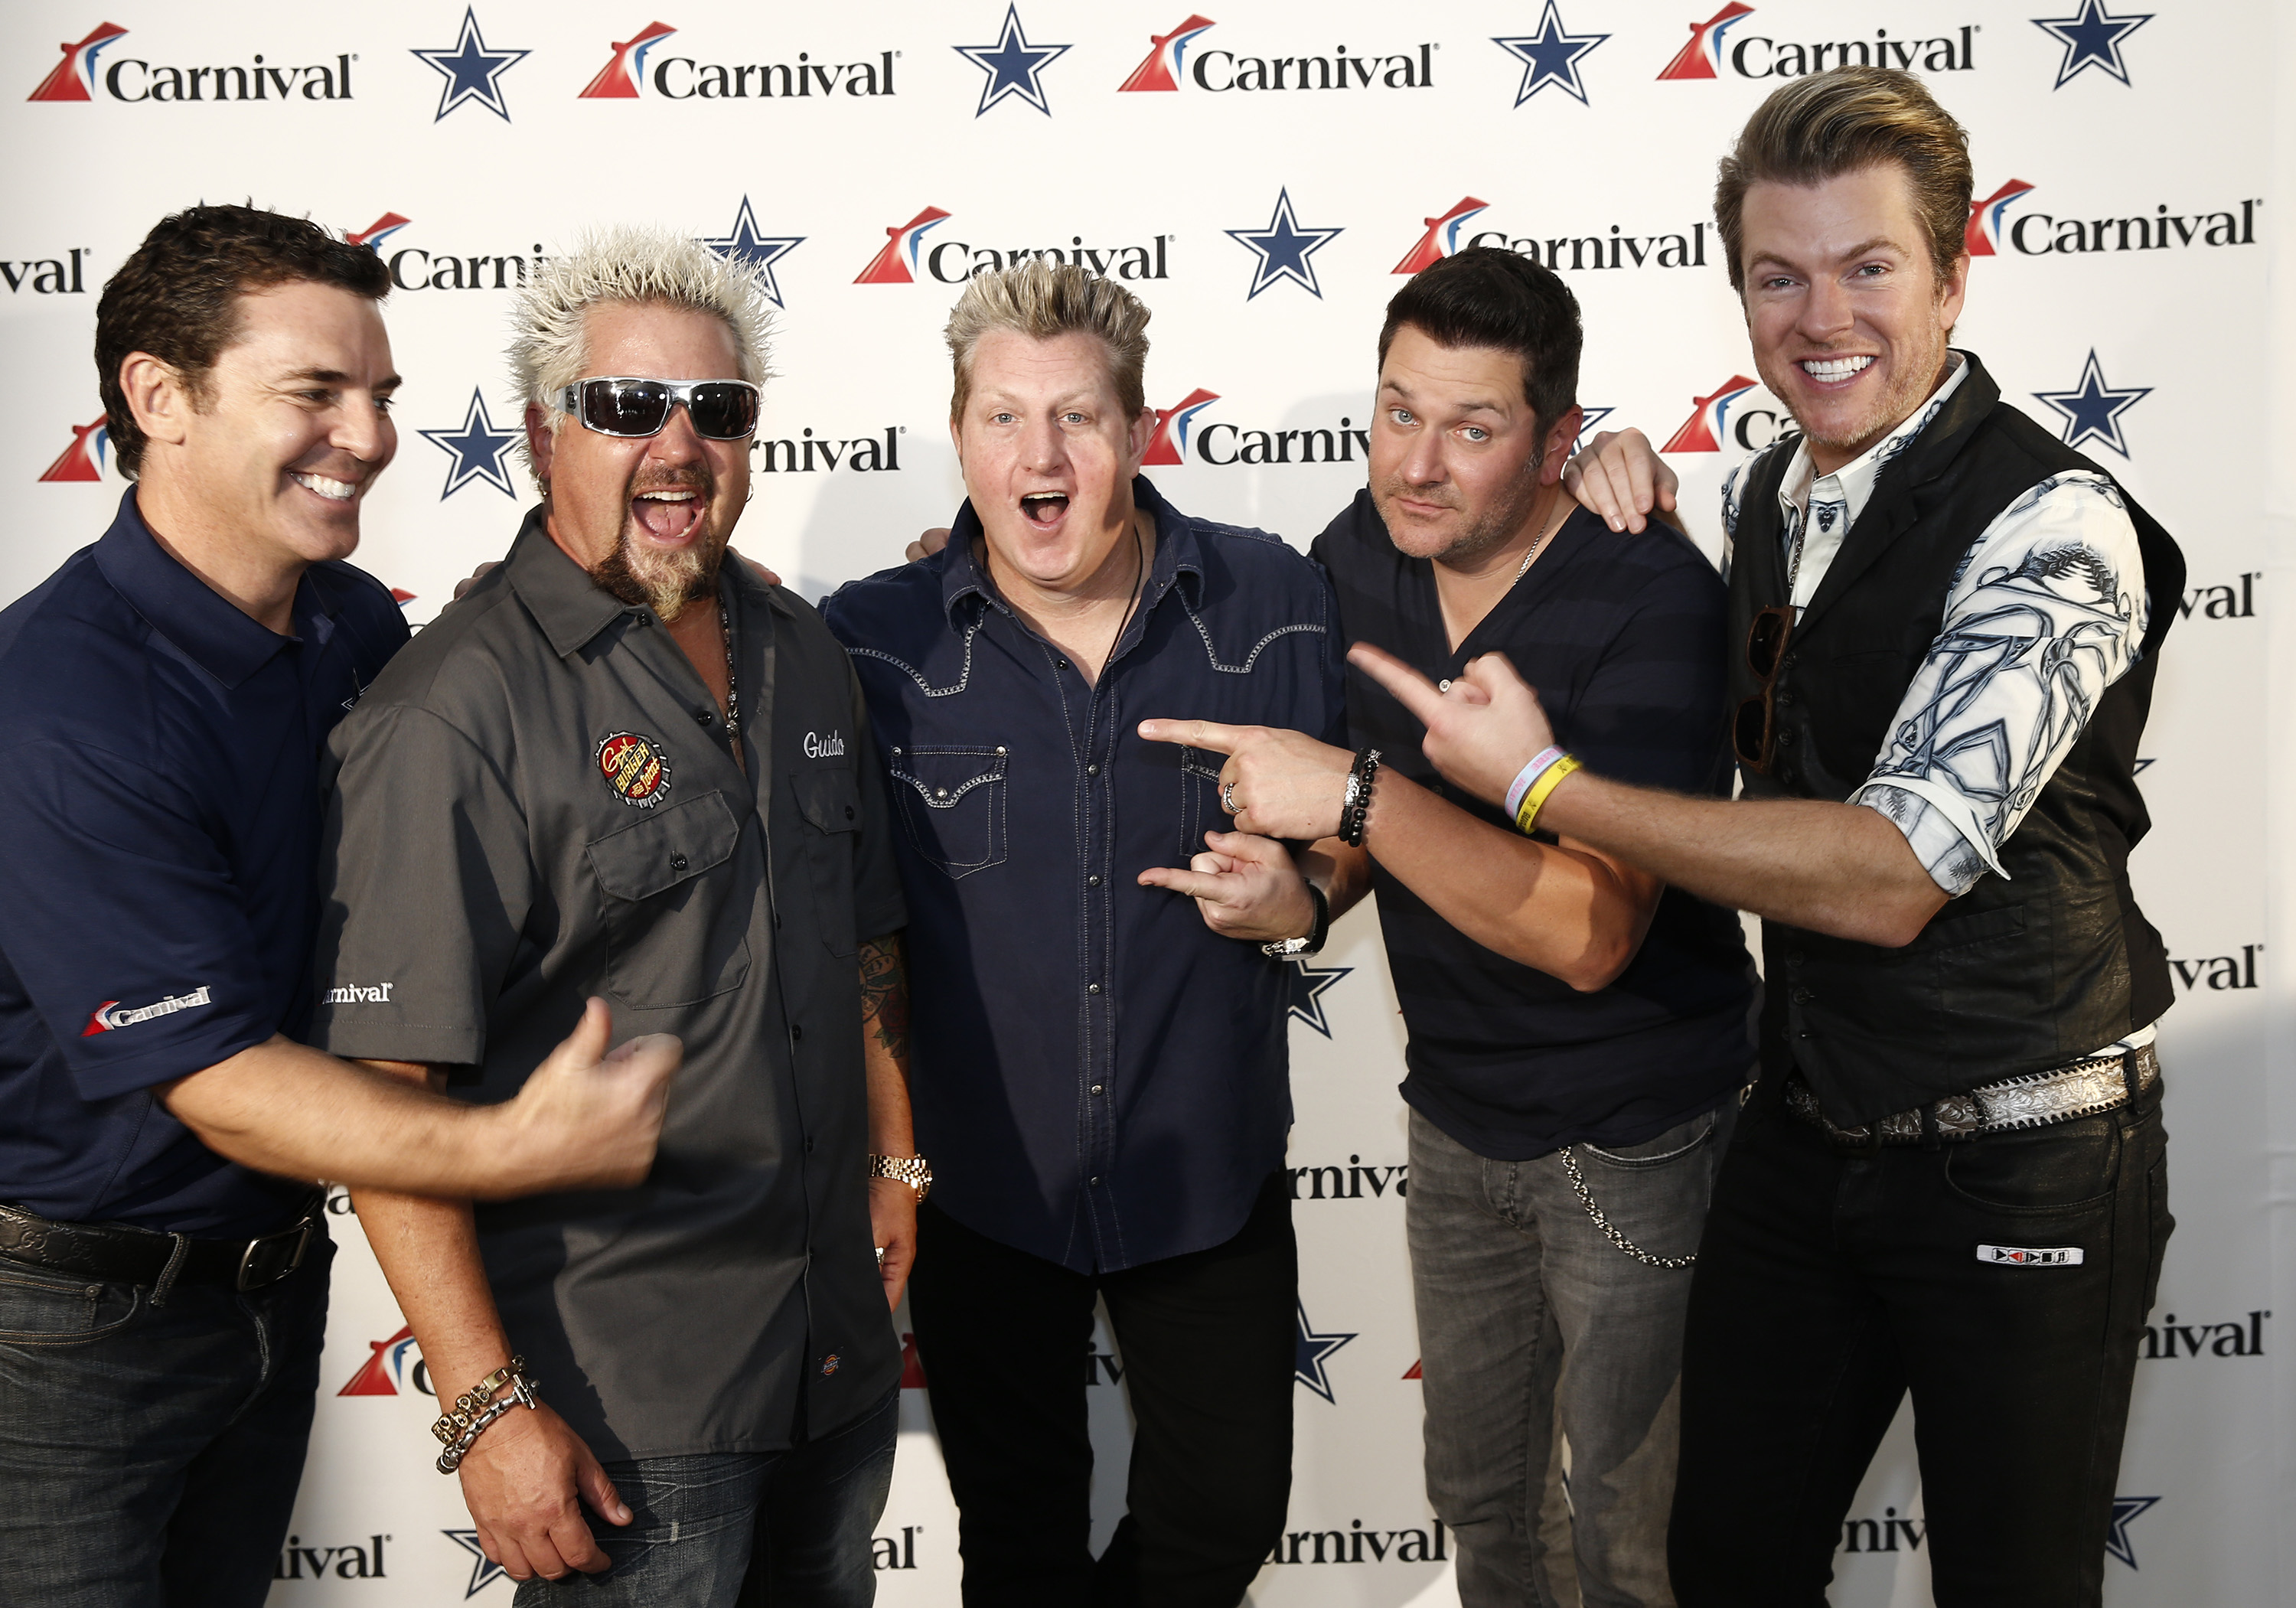 Carnival cruise lines dallas cowboys tailgate takeover featuring carnival cruise lines dallas cowboys tailgate takeover featuring chef guy fieri country music superstars m4hsunfo